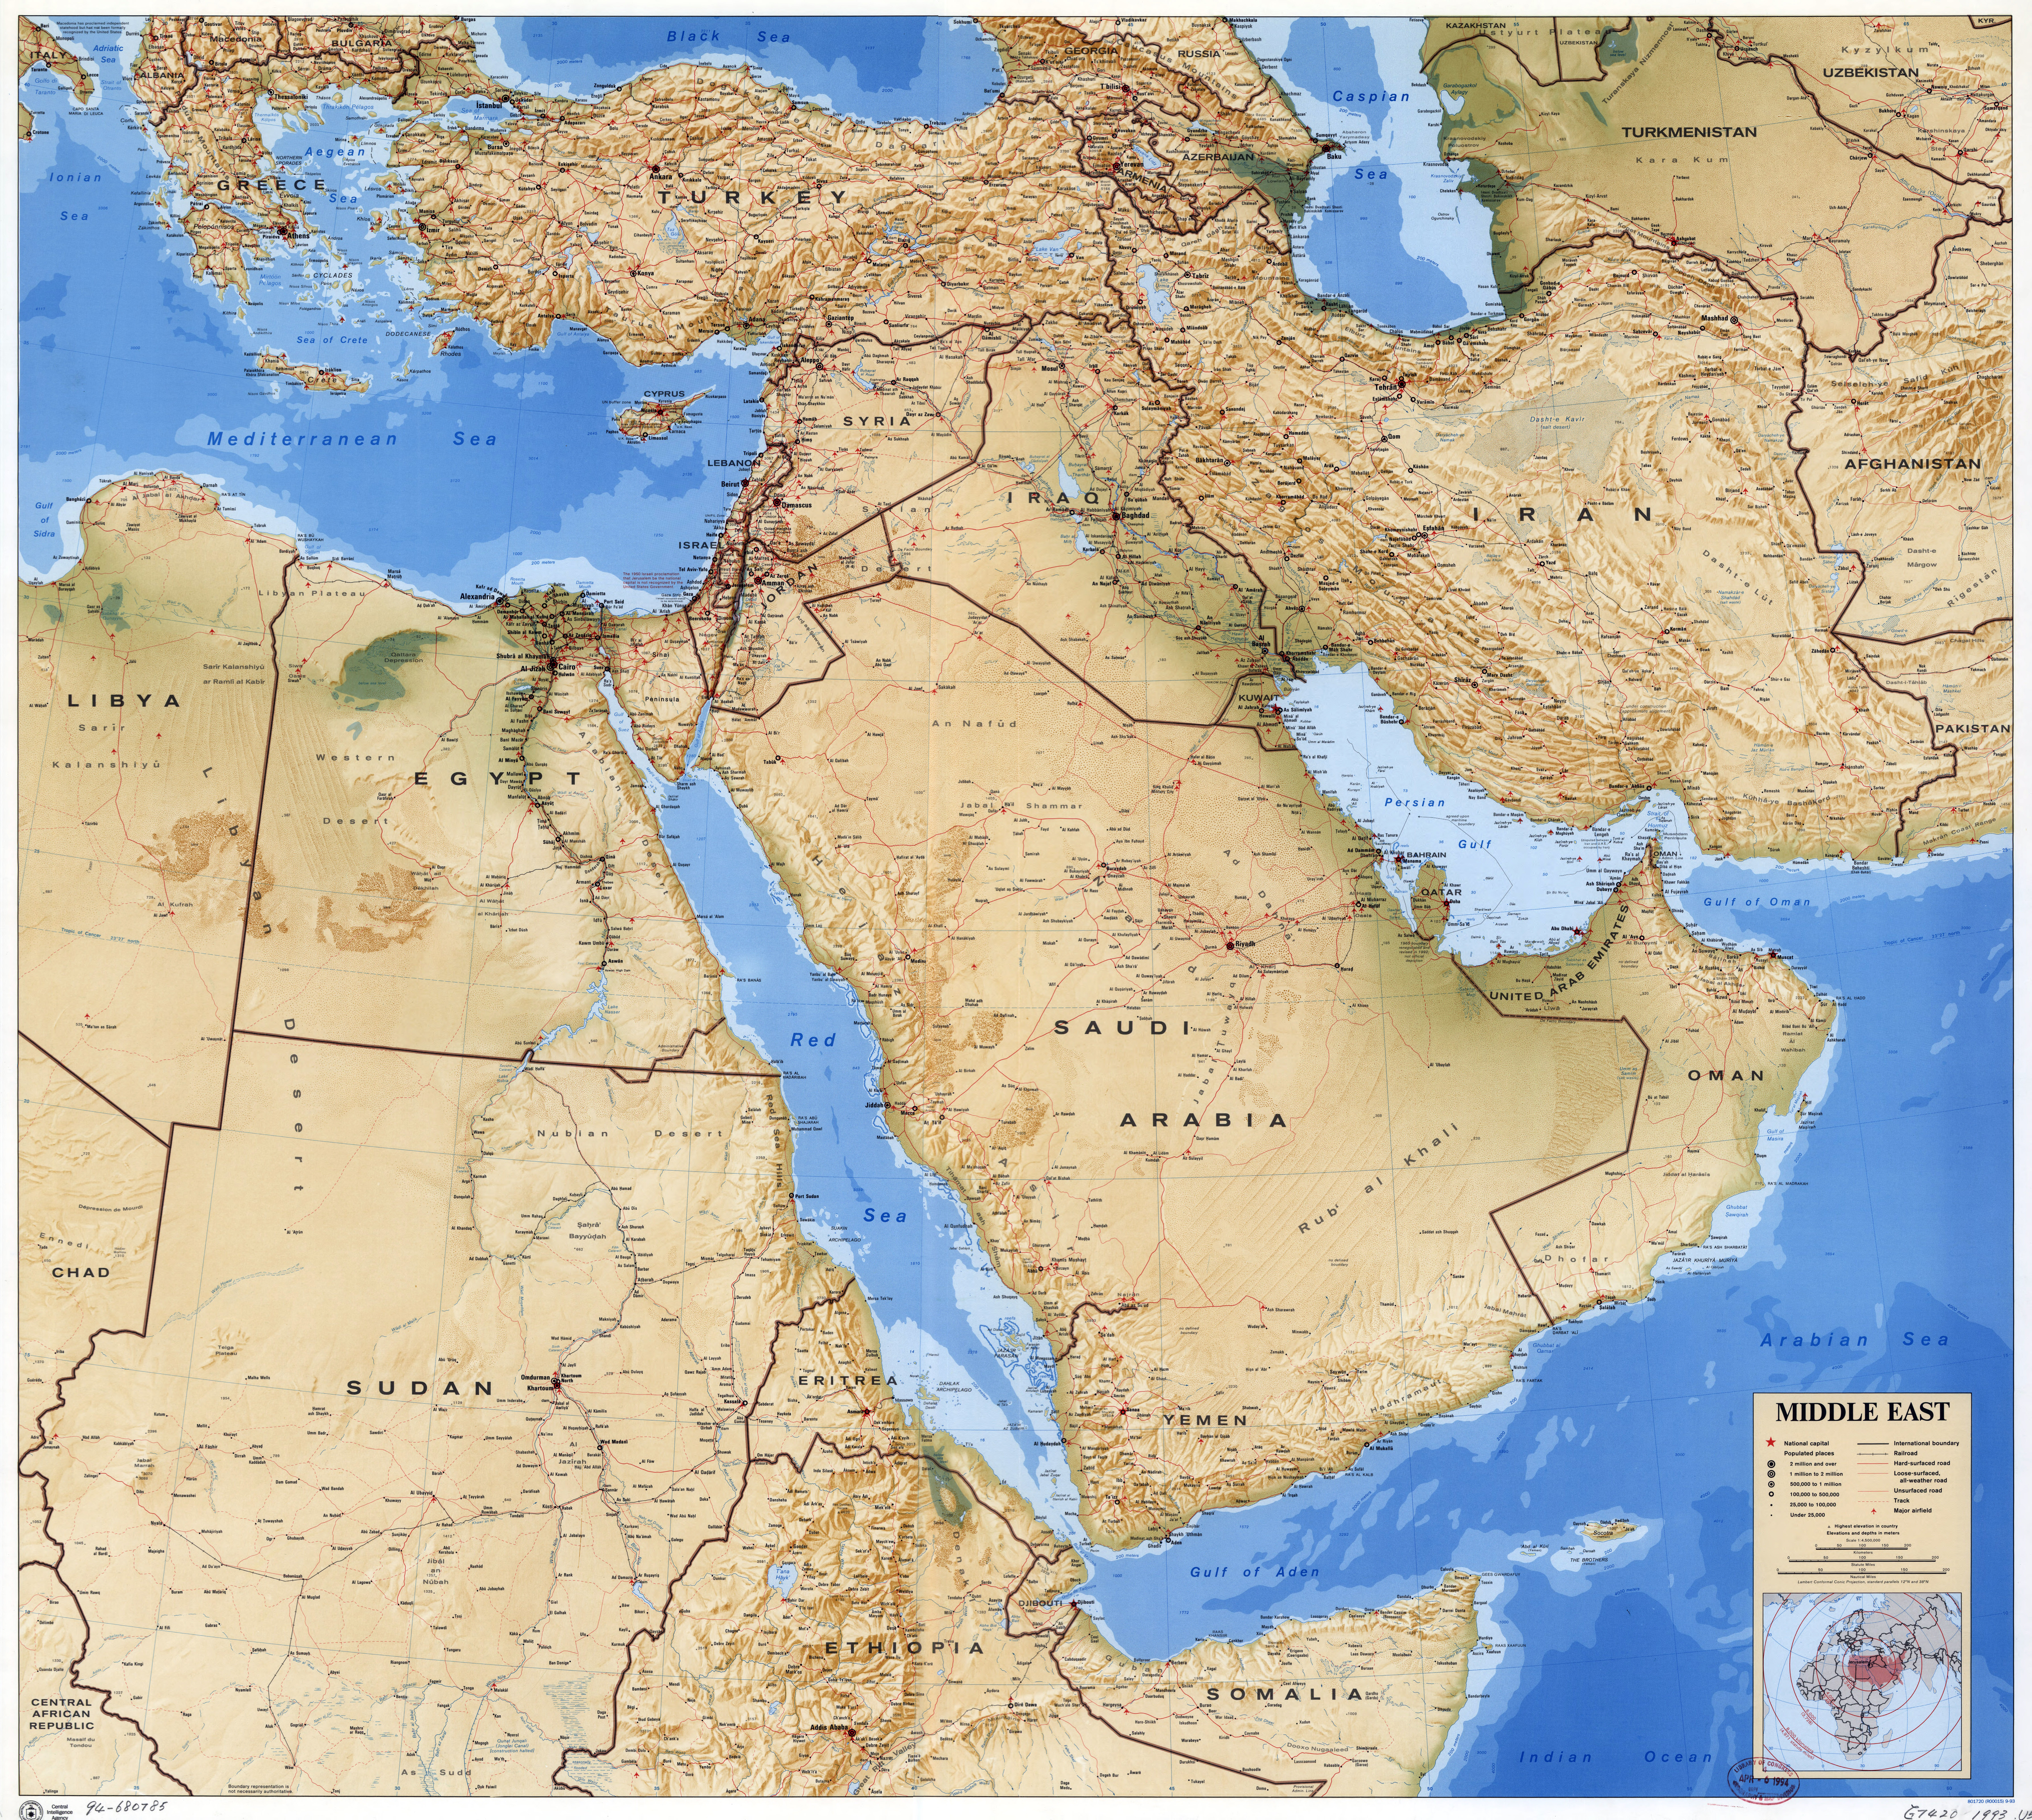 Large Scale Detailed Political Map Of The Middle East With Relief